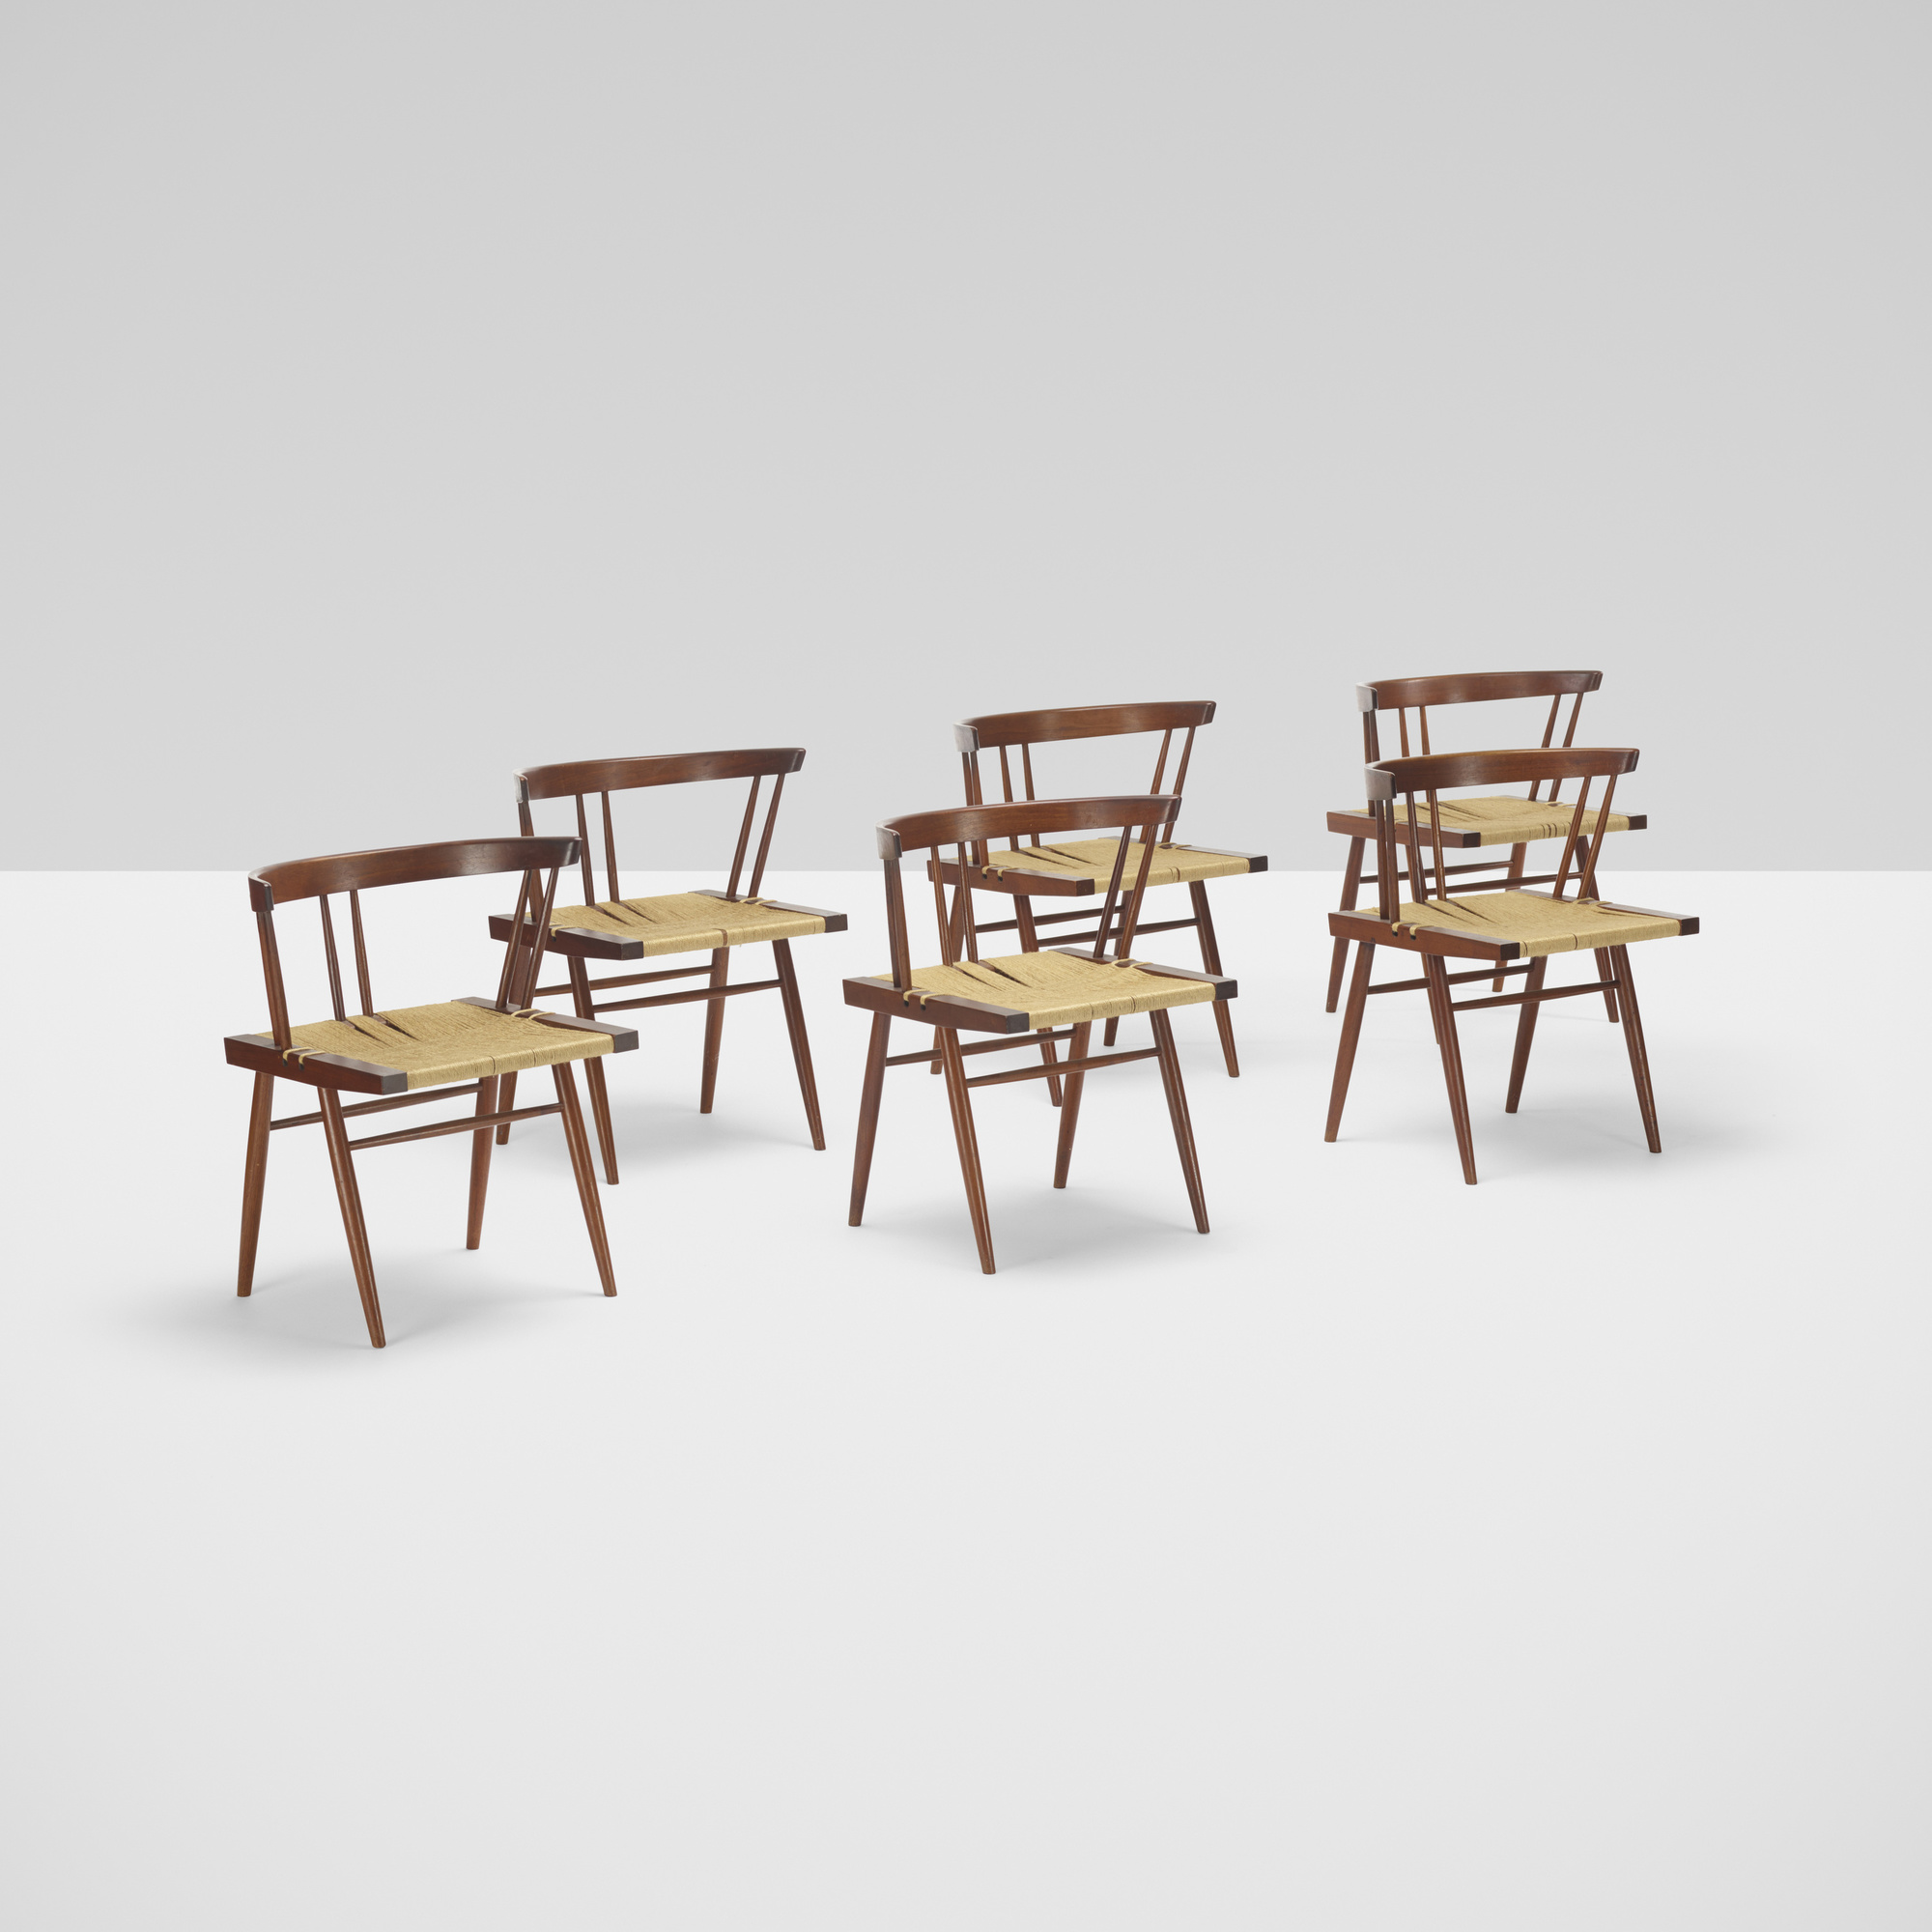 132: George Nakashima / Grass-Seated chairs, set of six (1 of 3)